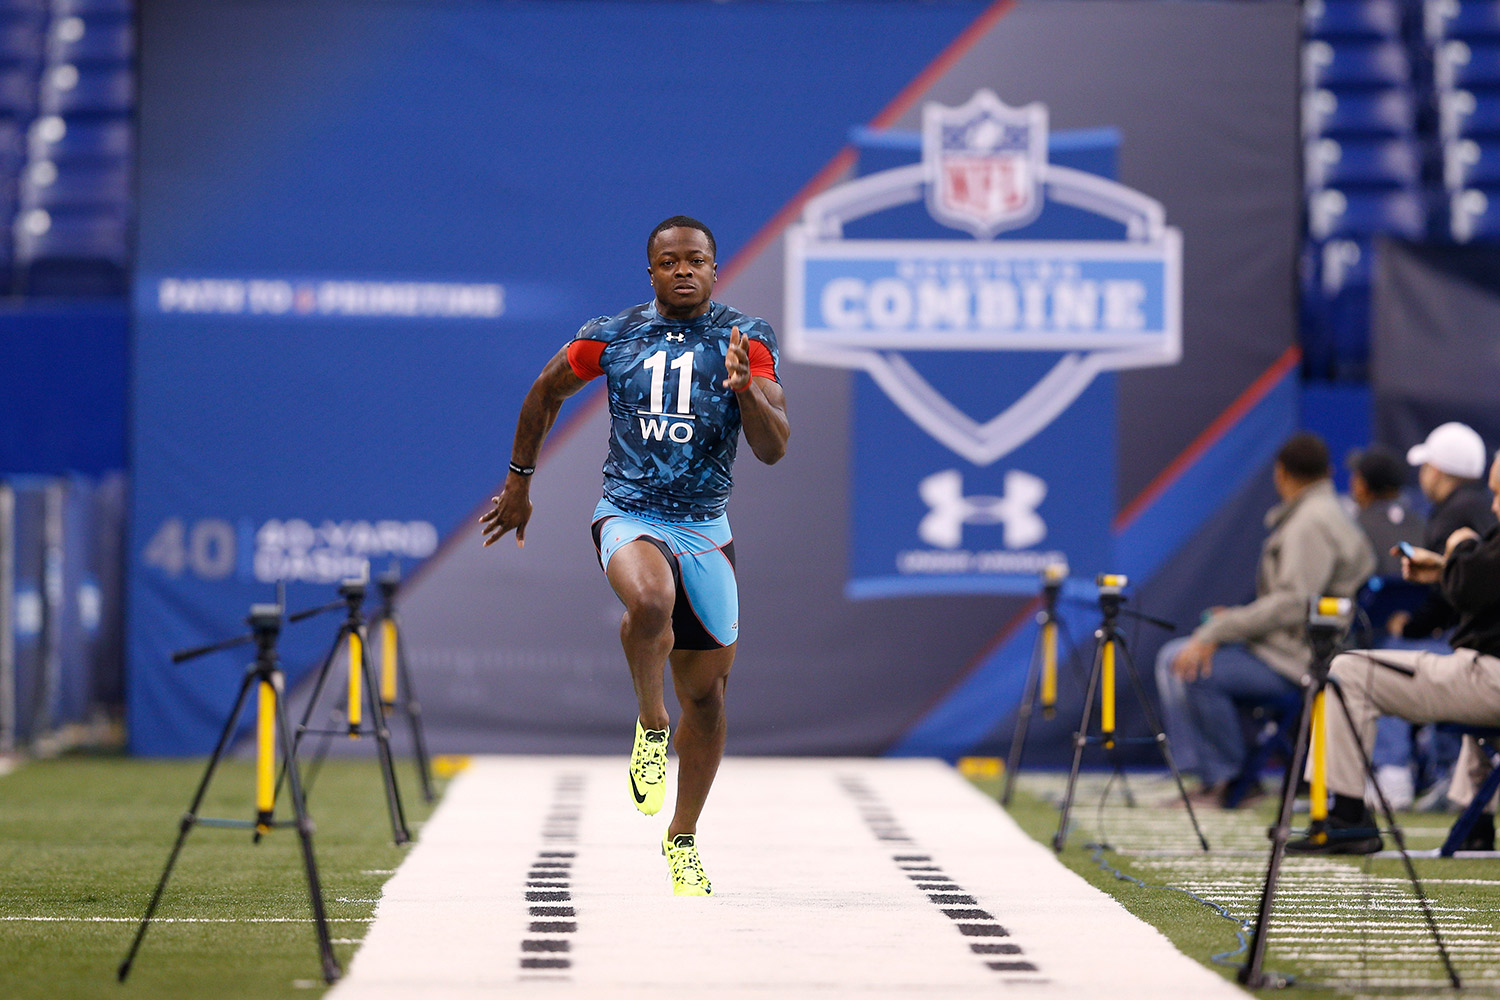 Drafted by the Buffalo Bills with the 78th overall pick in the 2013 NFL Draft, Marquise Goodwin is much more than just a speedy wide receiver and return man. Goodwin also represented the US in the 2012 Olympic Games in the long jump competition, placing 10th in the finals.